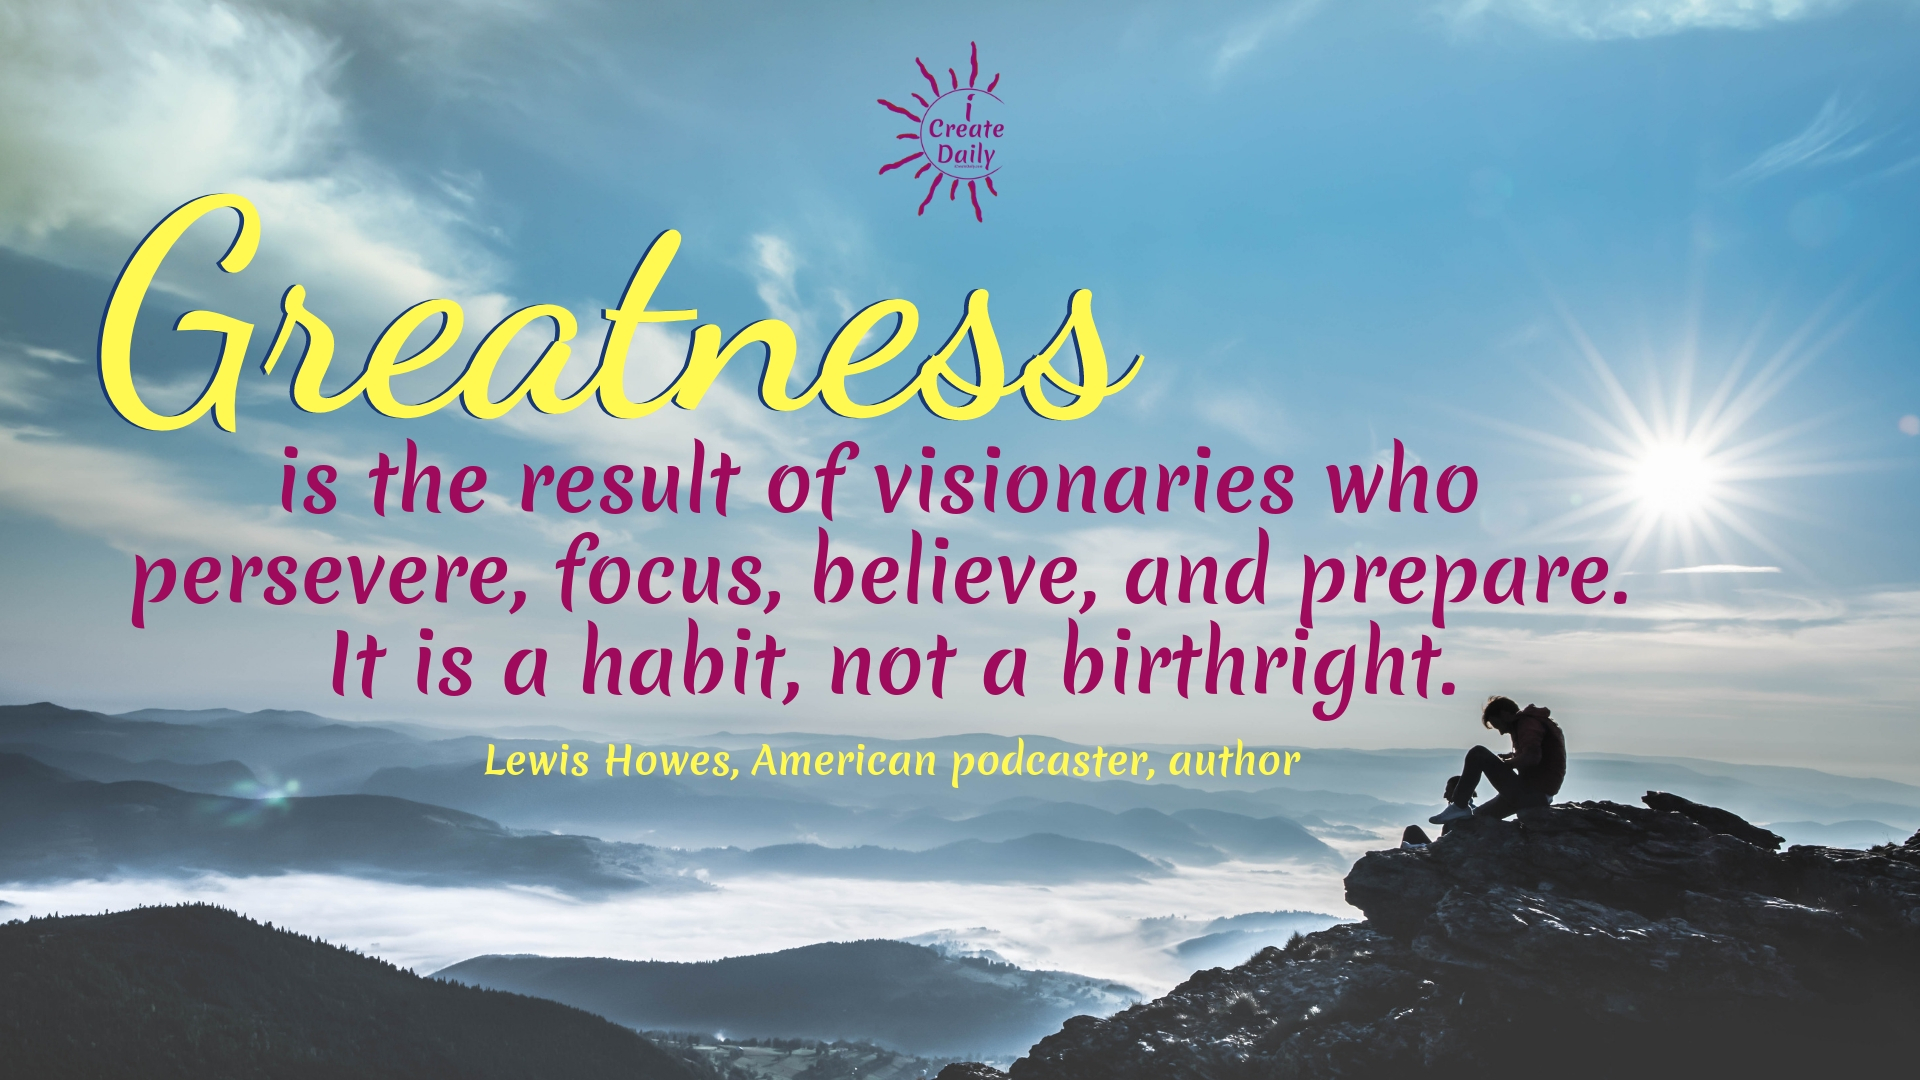 """Greatness is the result of visionaries who persevere, focus, believe, and prepare. It is a habit, not a birthright."" ~Lewis Howes, American podcaster, author, speaker, entrepreneur #GreatnessQuotes #HabitsQuotes #VisionariesQuotes #FocusQuotes #iCreateDaily #MeaningfulQuotes"